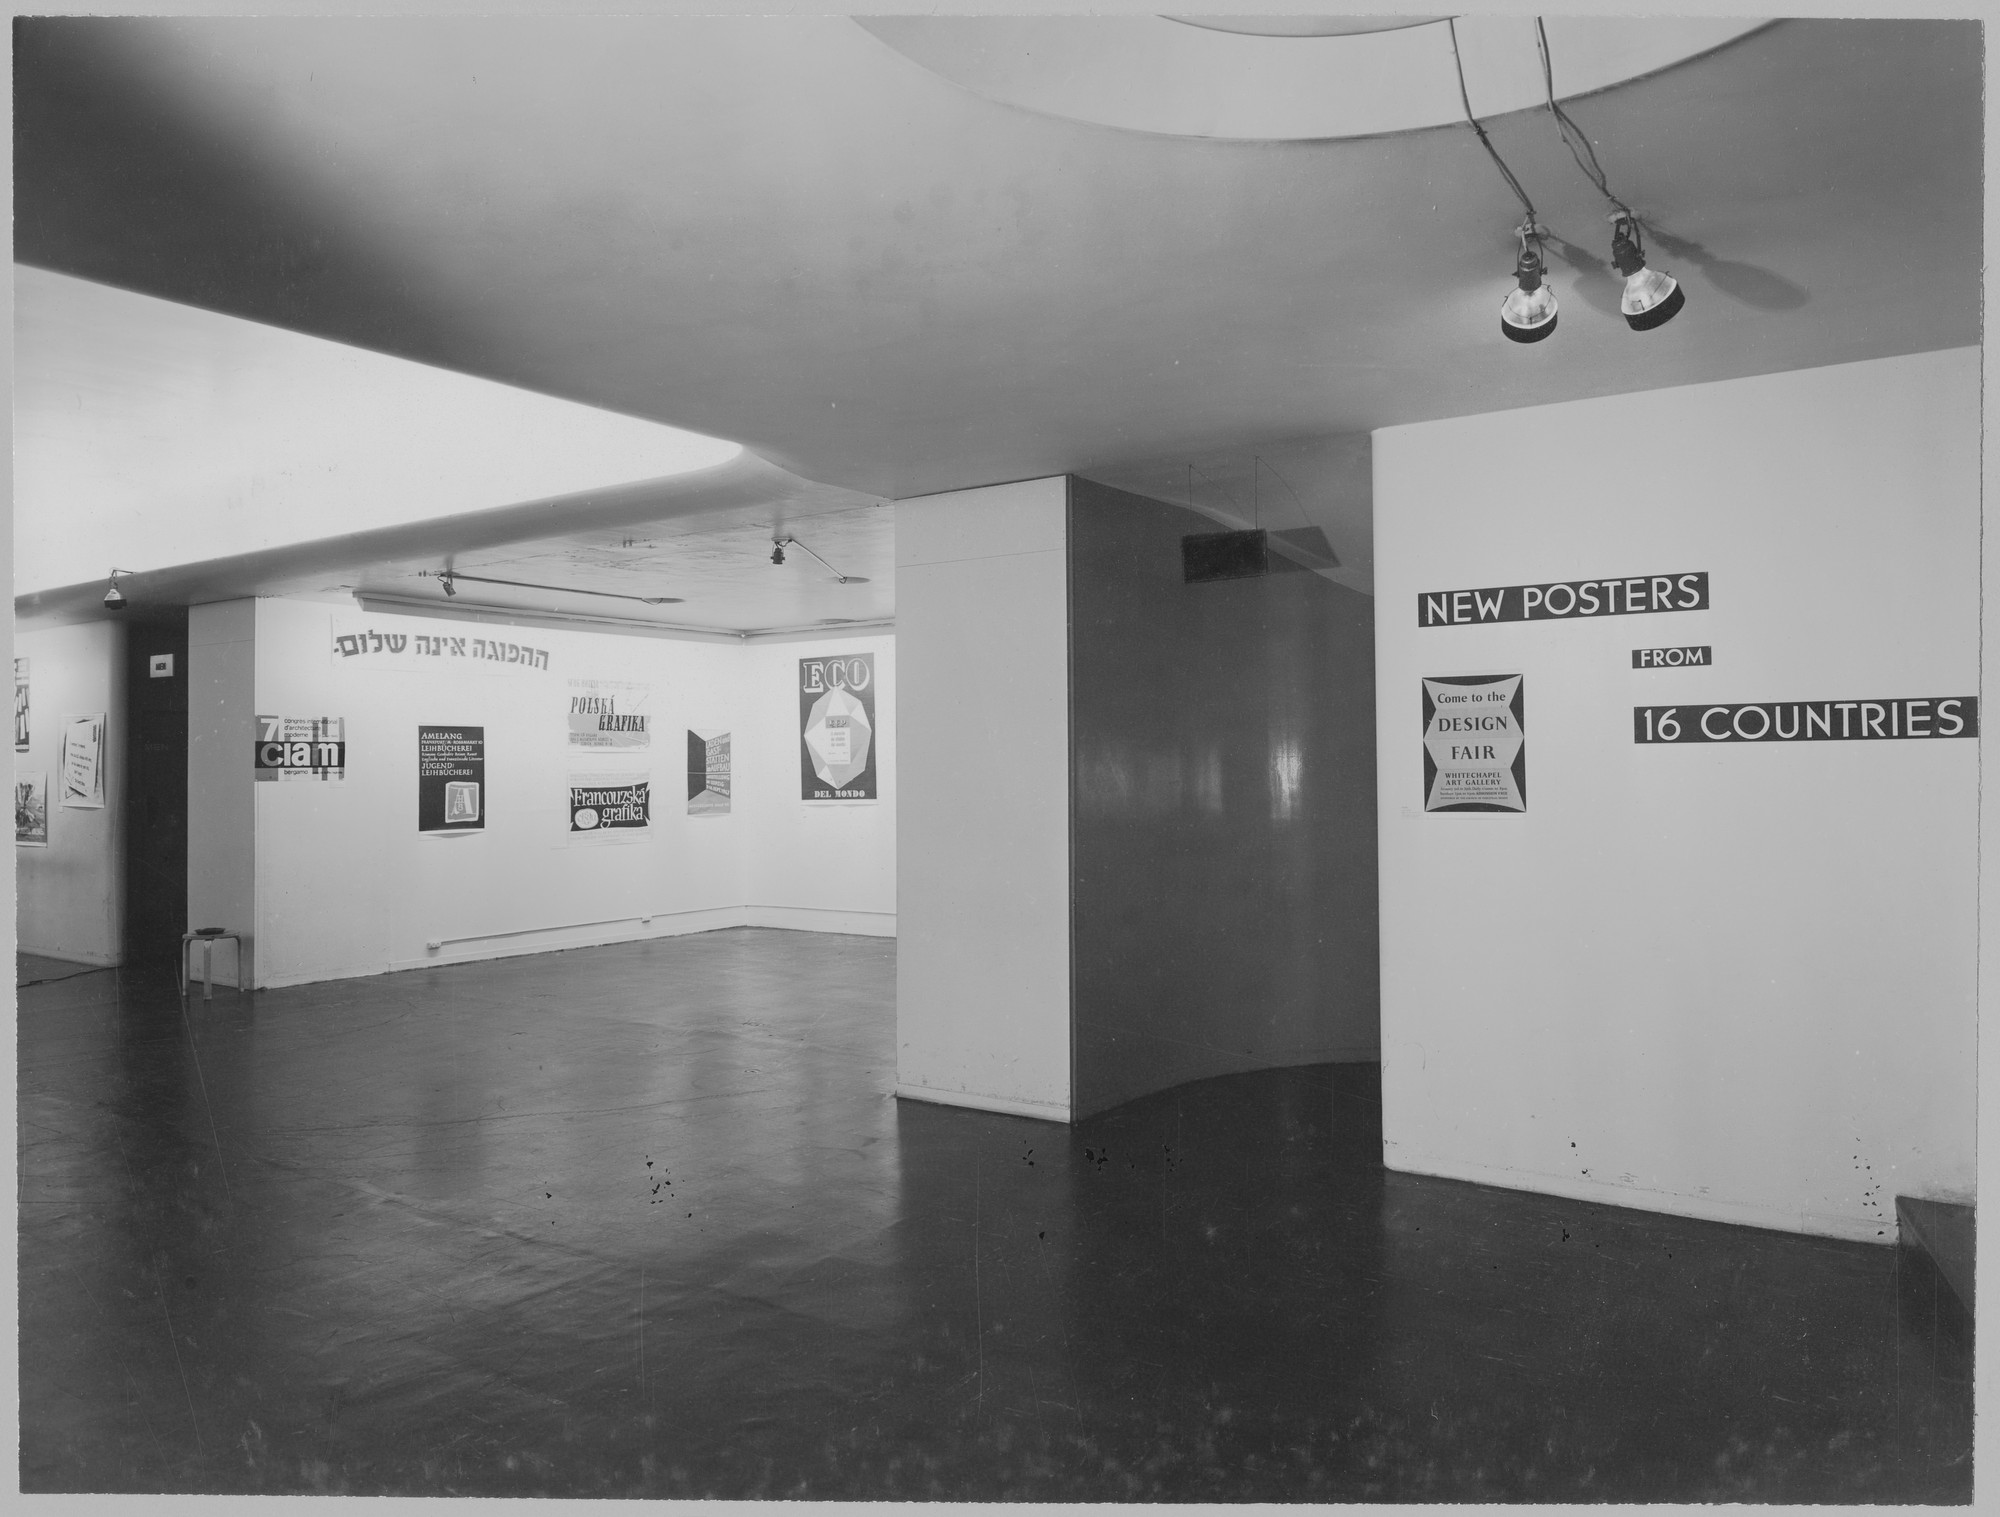 "Installation view of the exhibition, ""New Posters from 16 Countries."" October 11, 1949–November 20, 1949. Photographic Archive. The Museum of Modern Art Archives, New York. IN424.1. Photograph by Soichi Sunami."